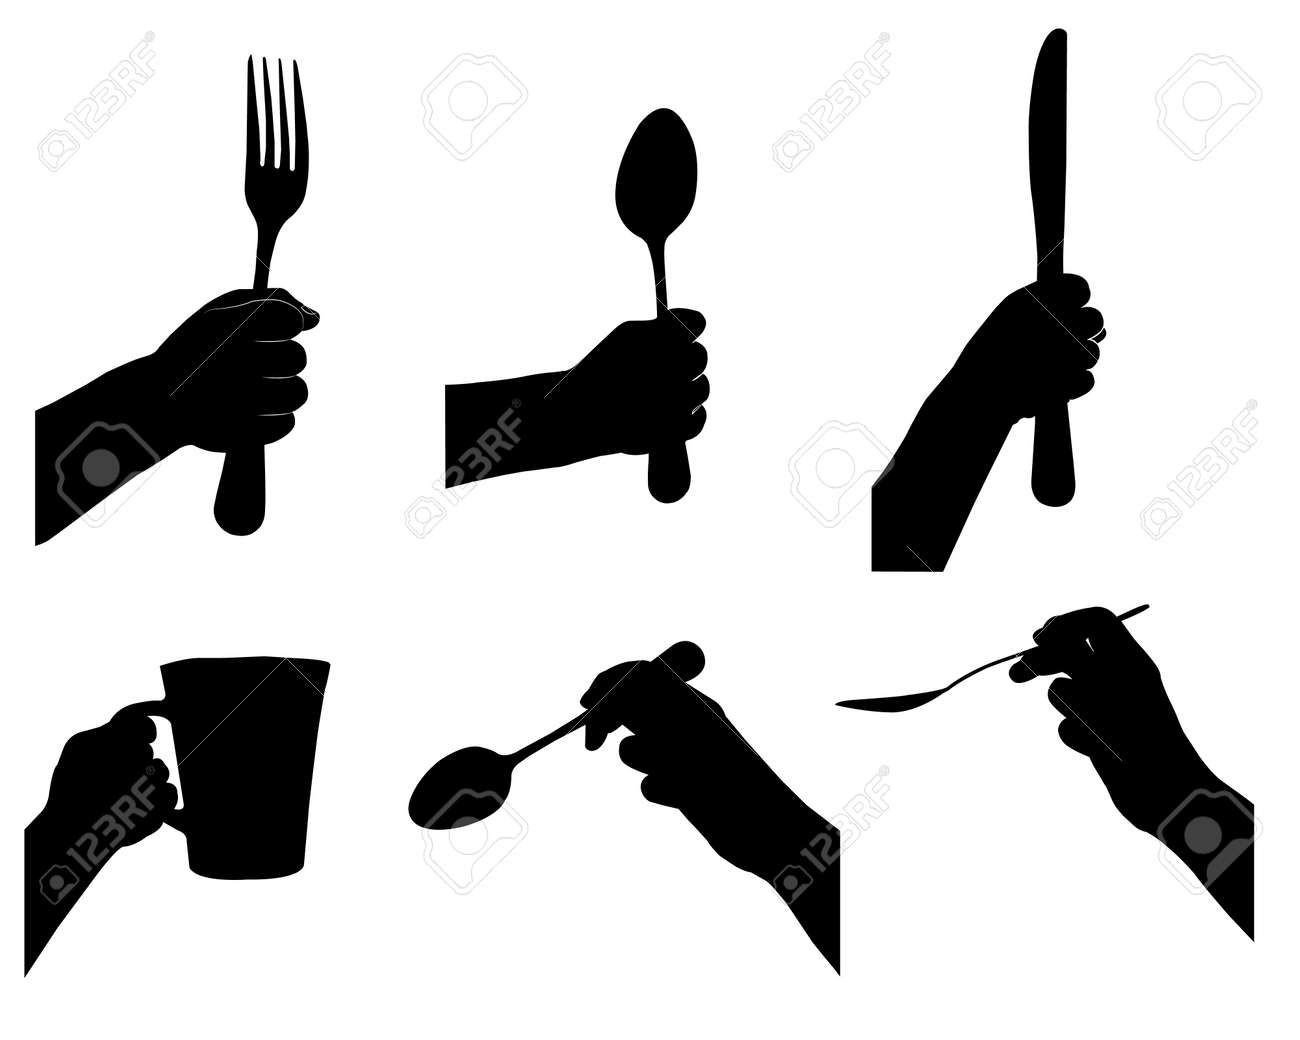 kitchen tools in hand silhouette vectors set royalty free cliparts rh 123rf com silhouette vector art free silhouette vectors free